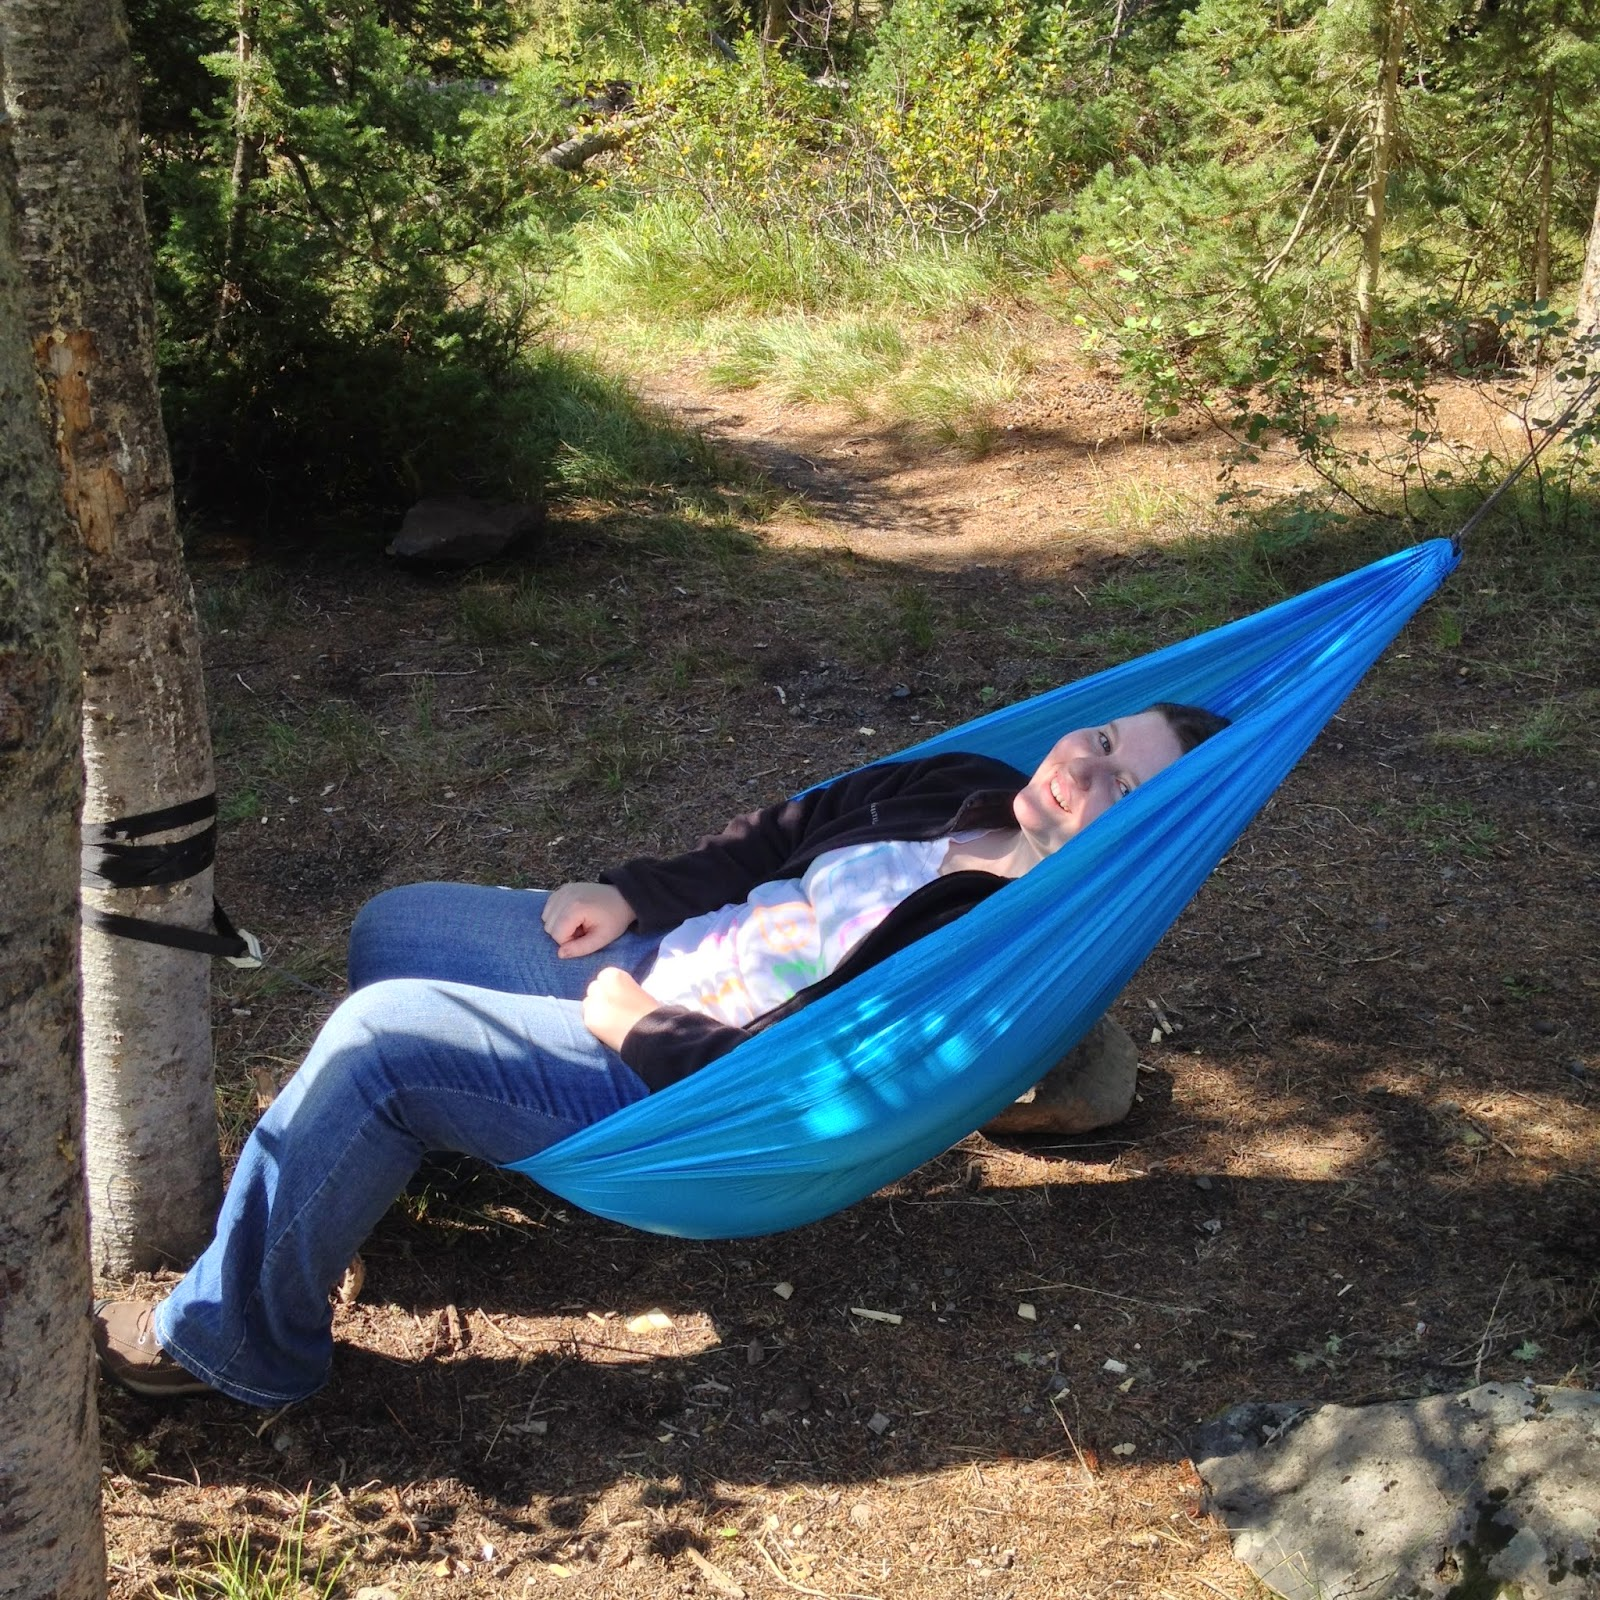 if you are looking for an ultraportable light weight  fortable chair to take with you into the woods then consider the bushman hammock chair  teton tenkara  bushman hammock chair    review  rh   tetontenkara blogspot